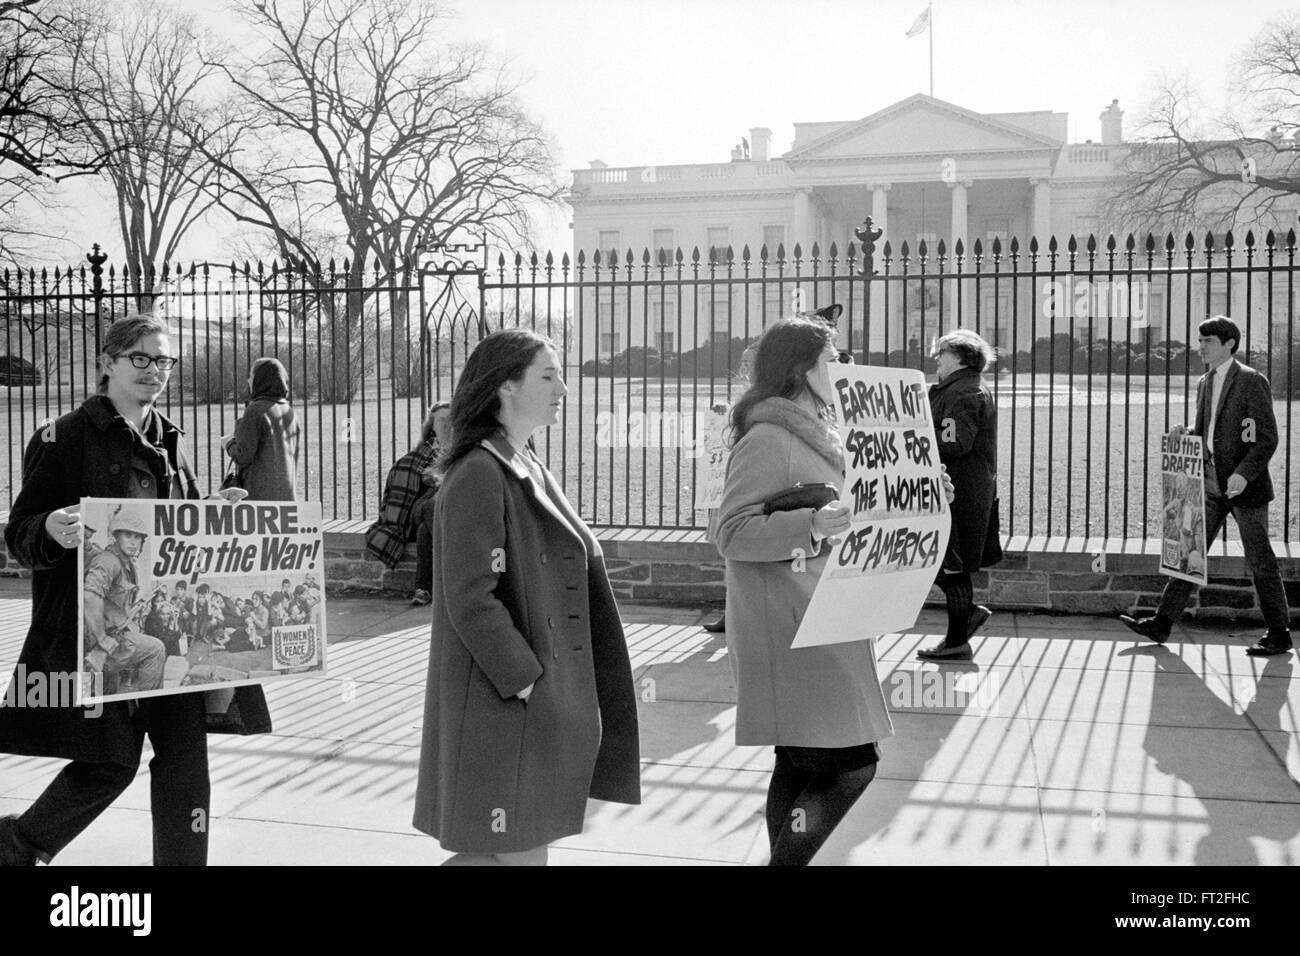 notes on anti vietnam war protests The anti-war movement of the 1960s ultimately contributed to ending the vietnam war, and it also opened up a major ideological divide in america the dubious motives for the war in vietnam incited .